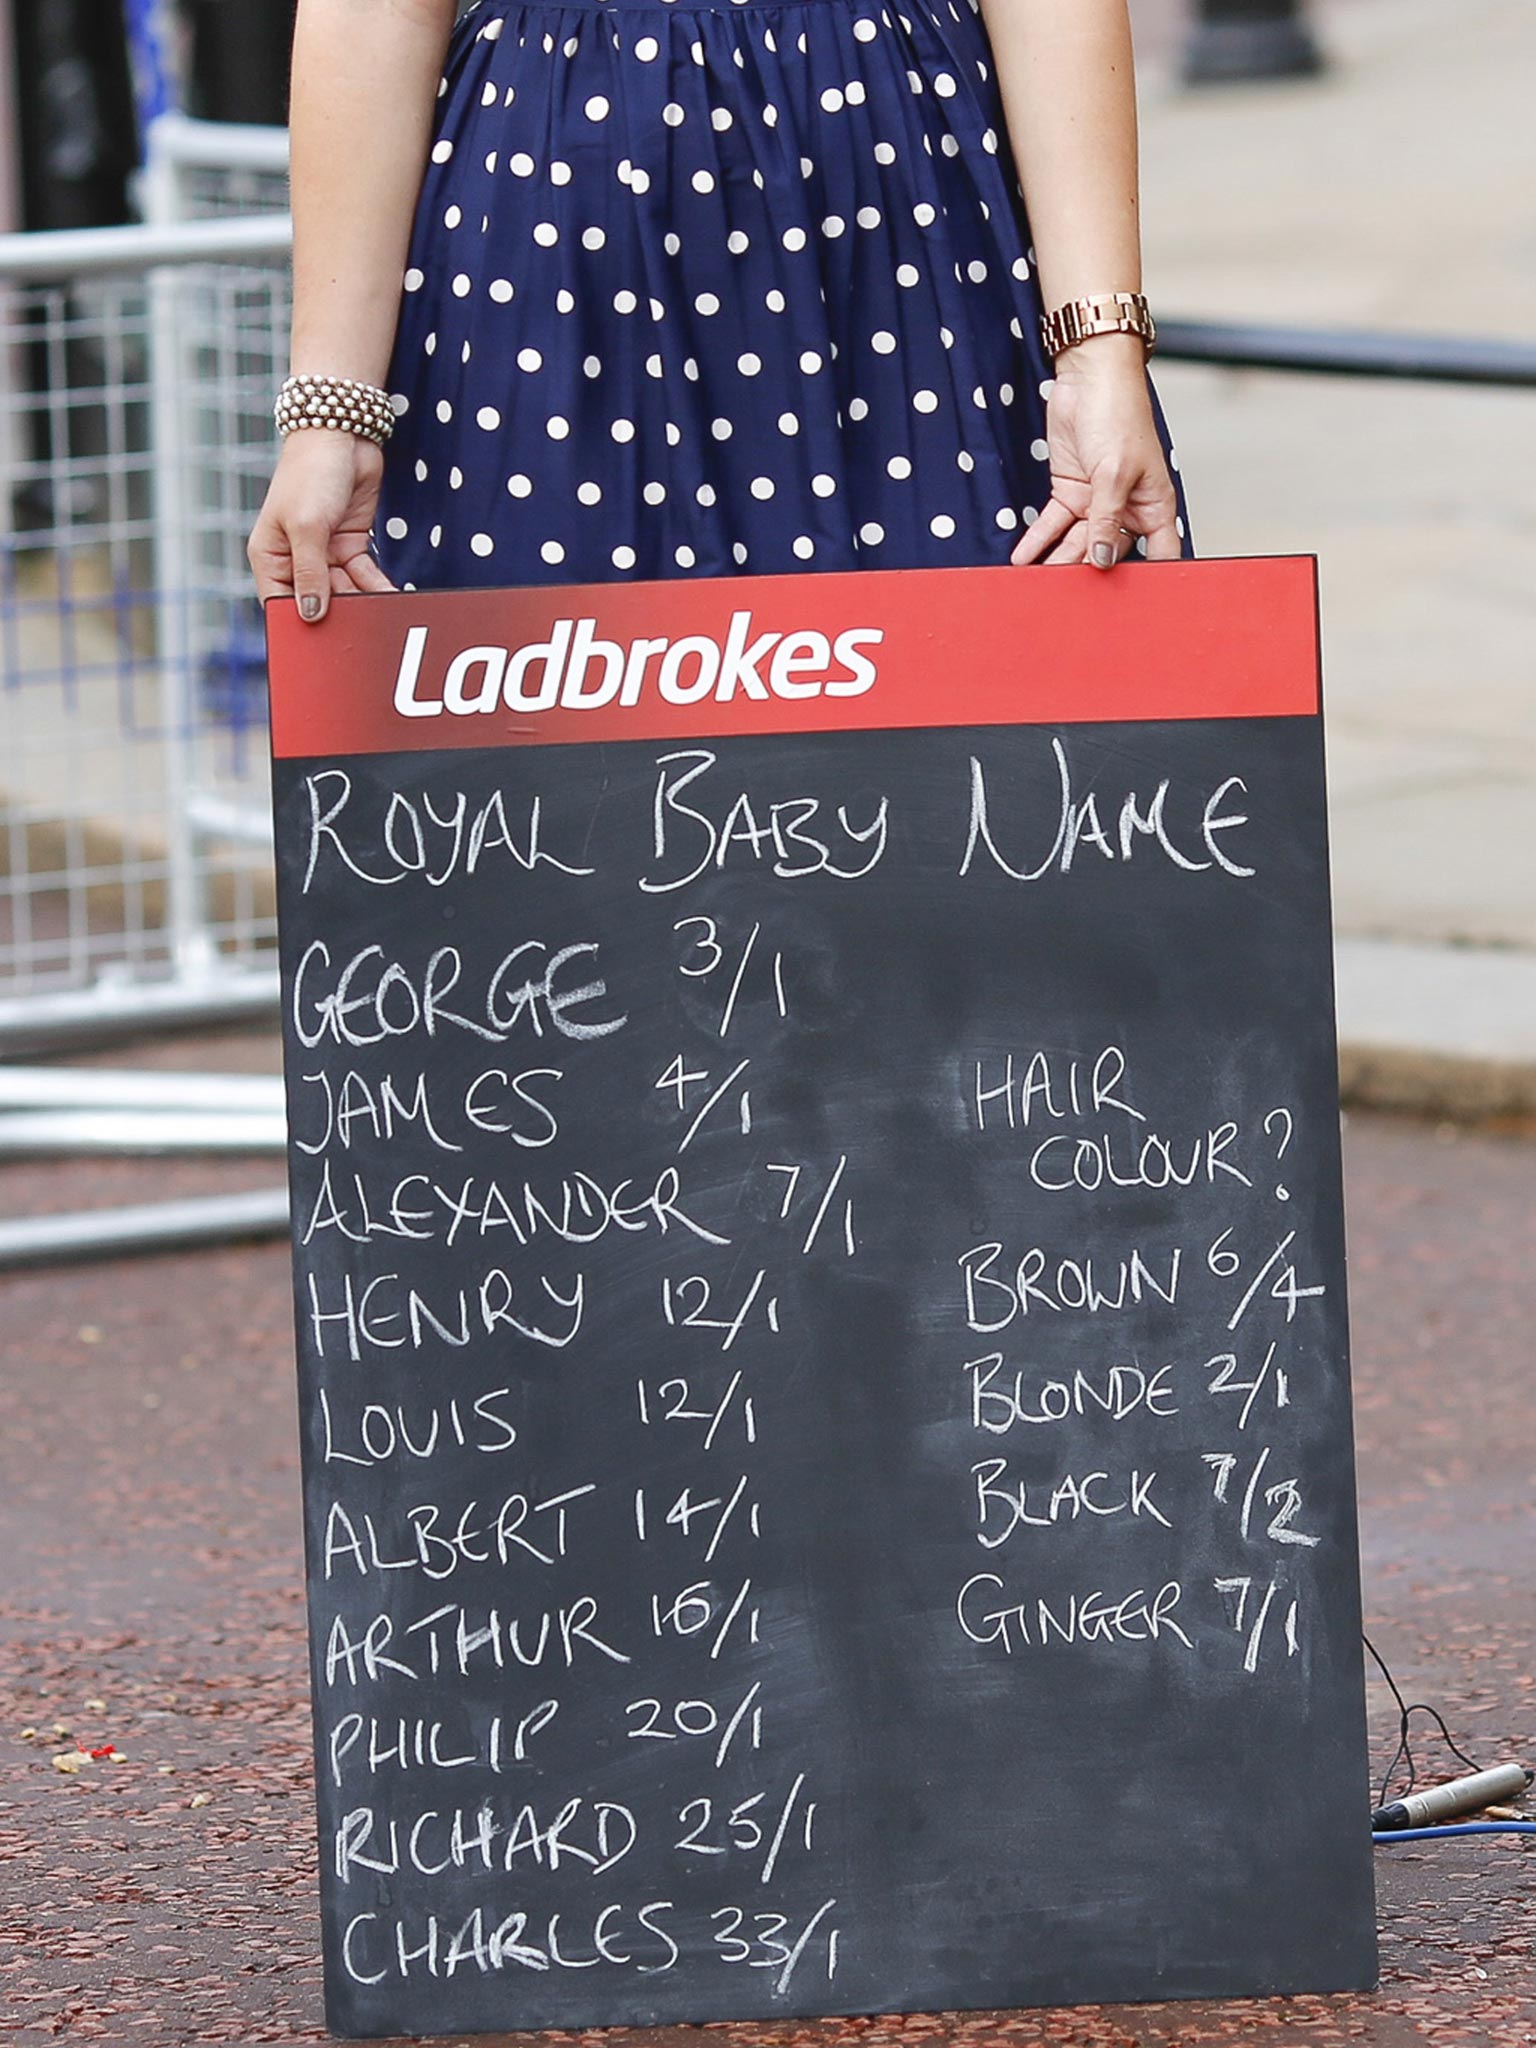 Bookies bets on royal baby name laurie bettinghaus